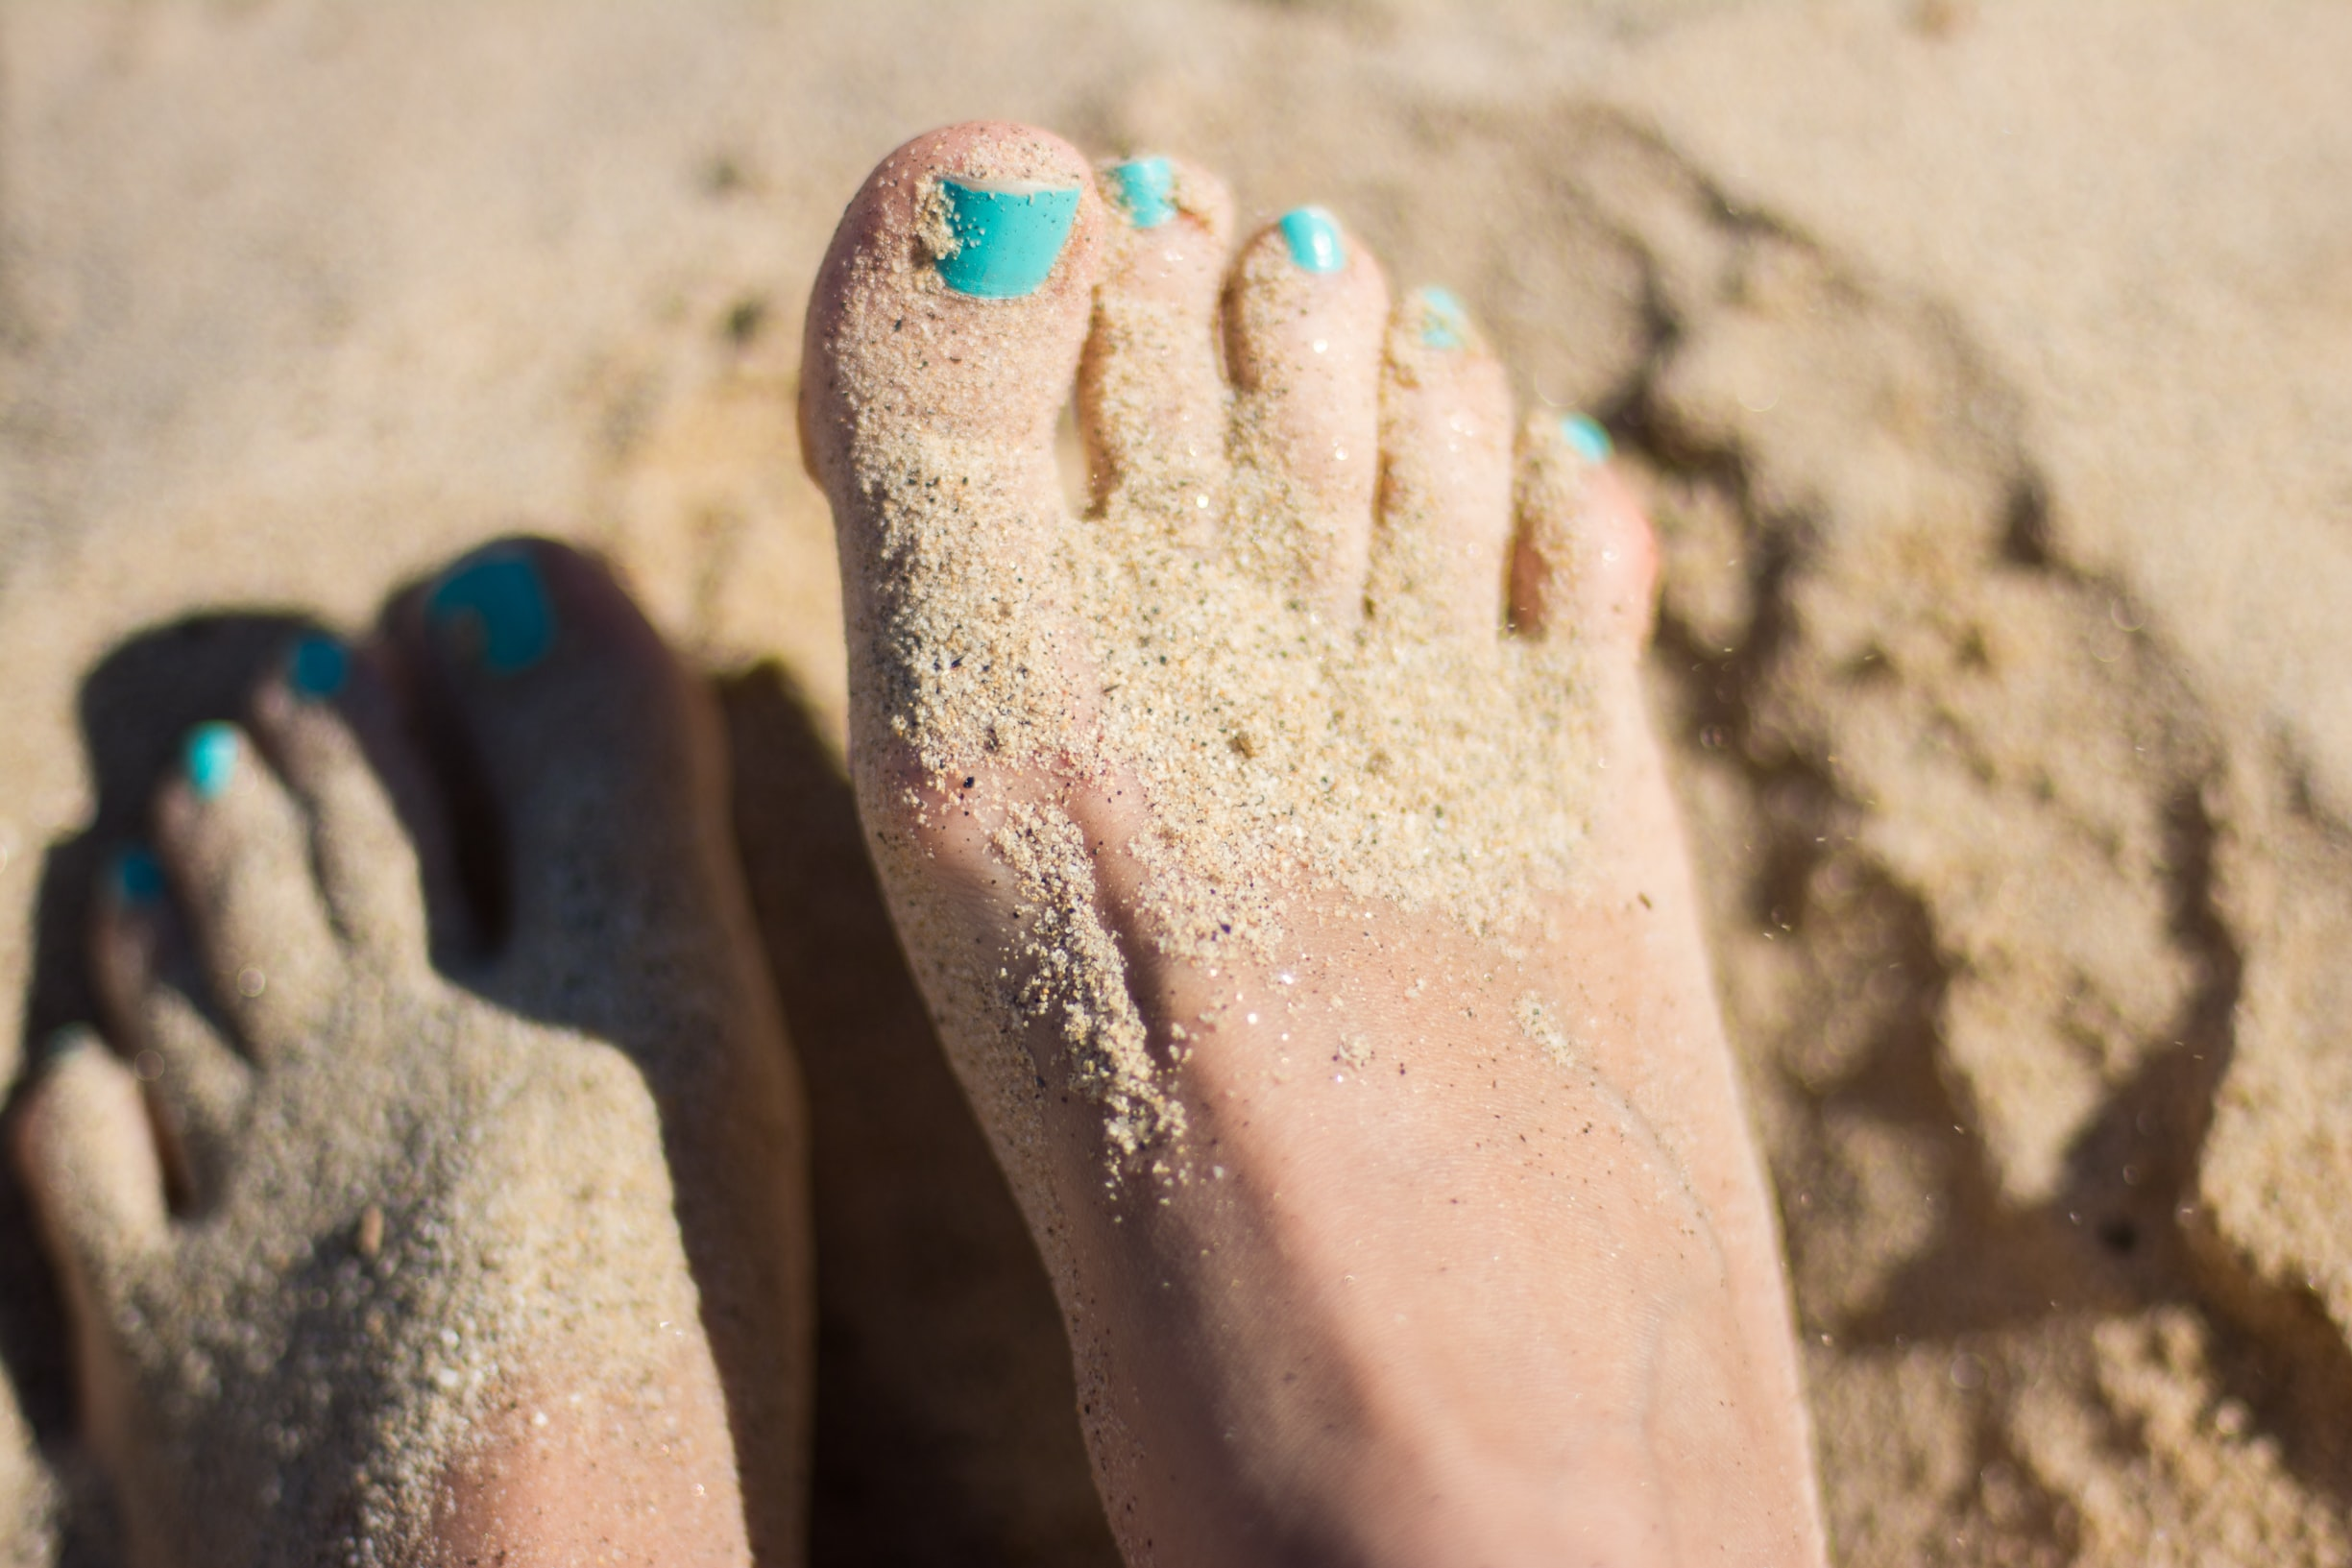 feet in the sand with blue toenails